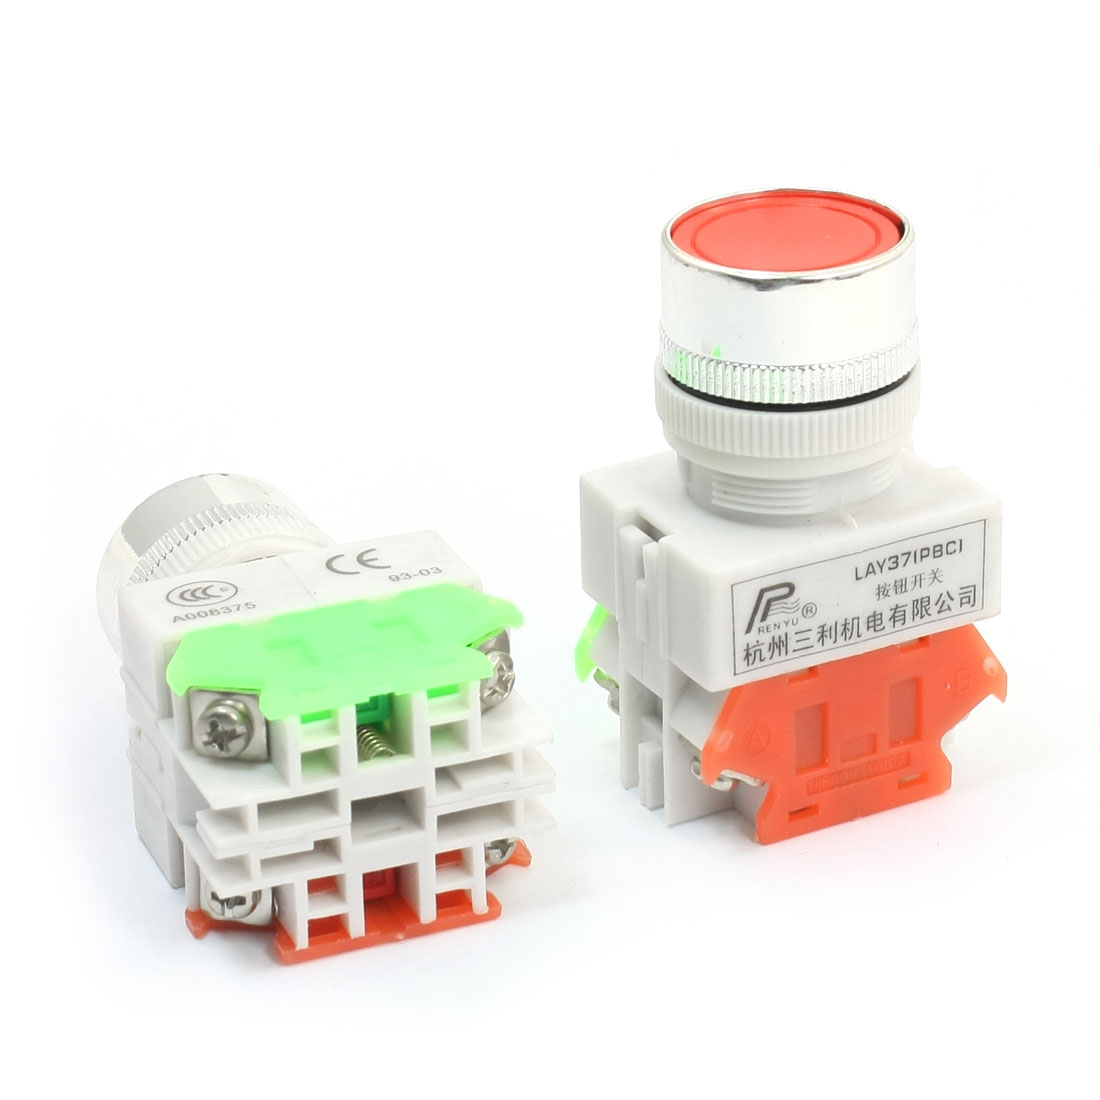 2Pcs Ui 600V Ith 10A 23mm Thread Panel Mounting DPST 1NO 1NC 4 Screw Terminal Momentary Action Plastic Push Button Switch